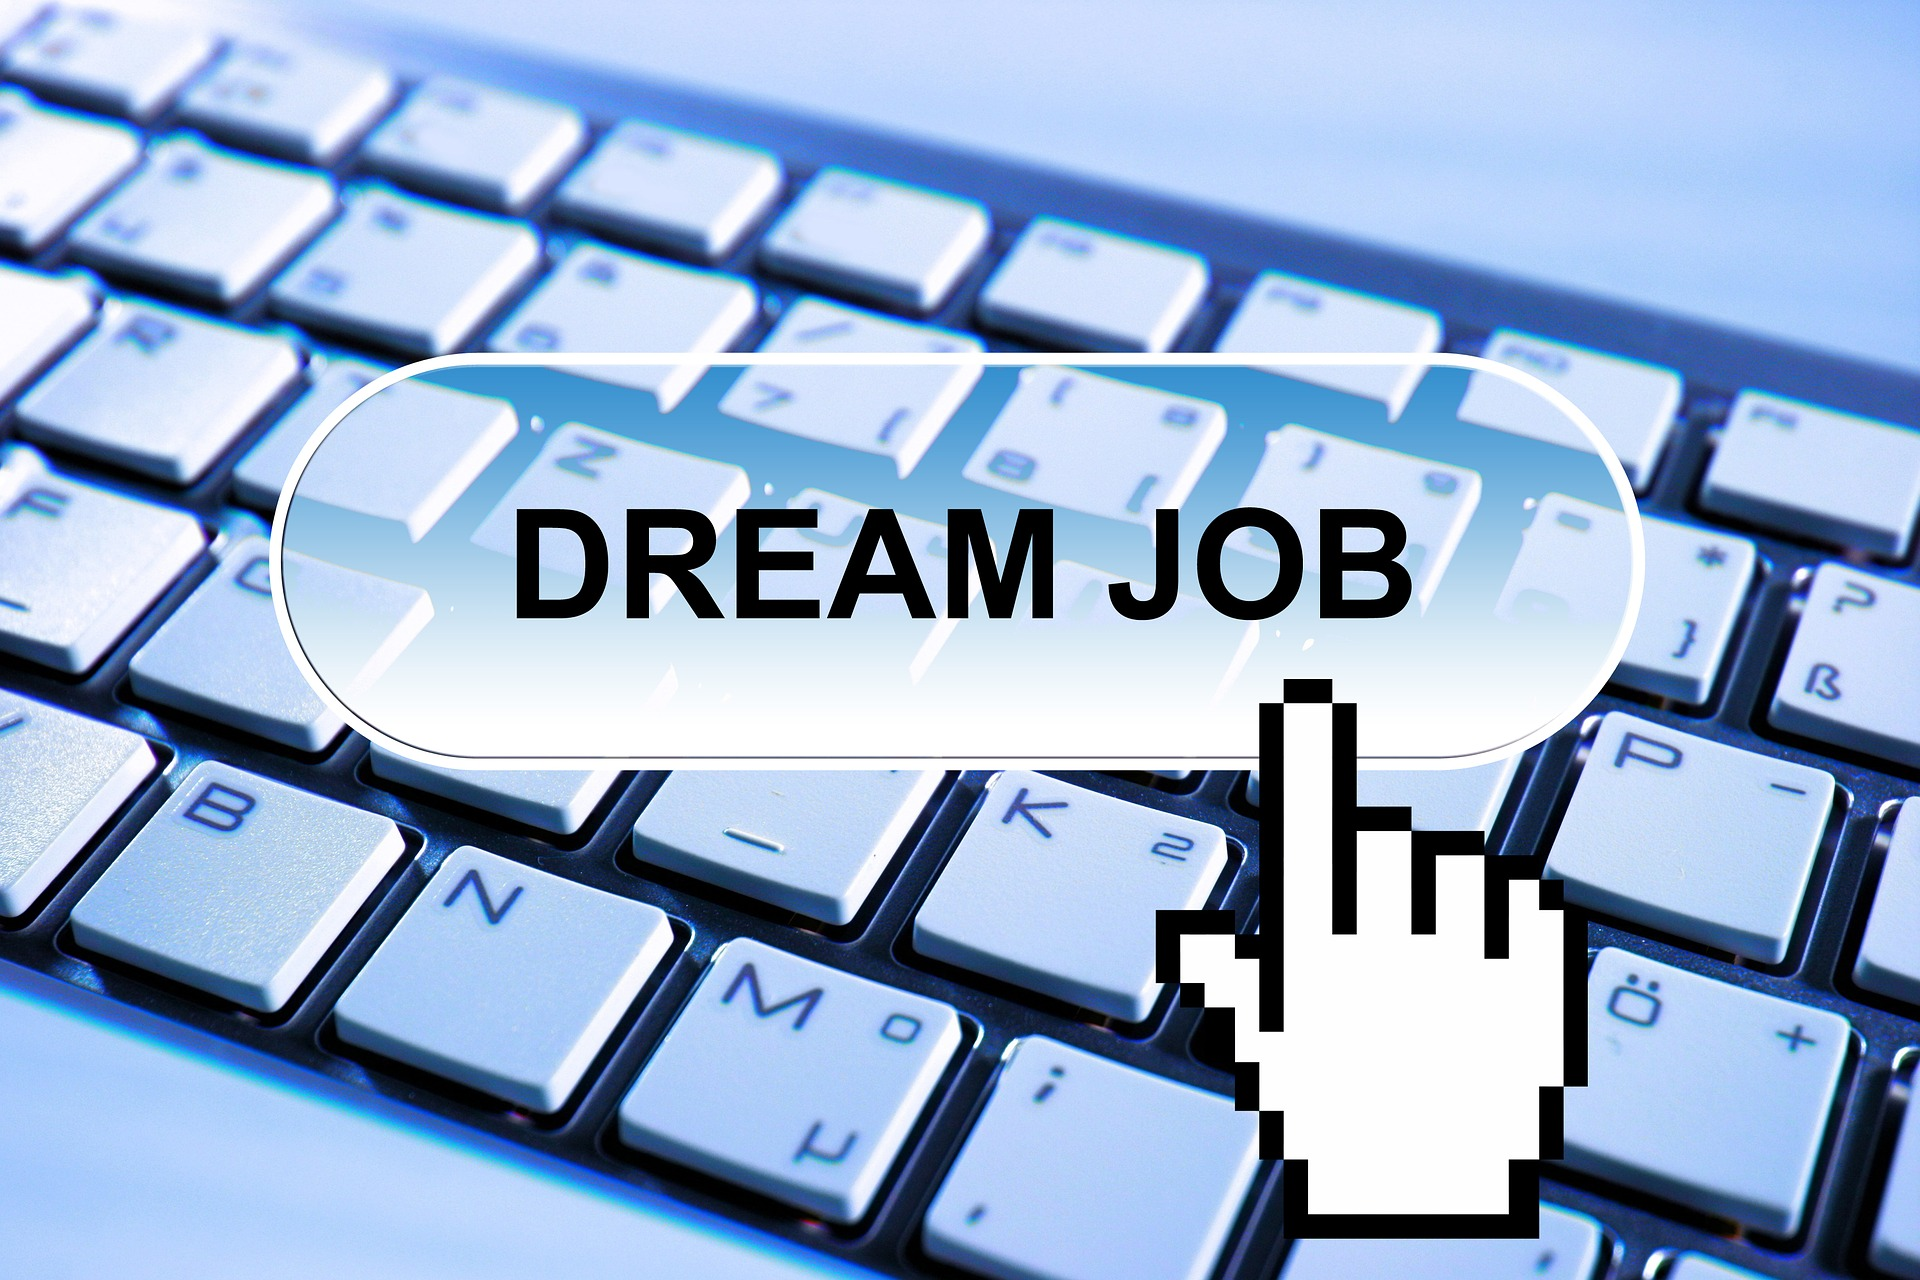 RV General Structure Of A Resume Is Your Key To Dream Job